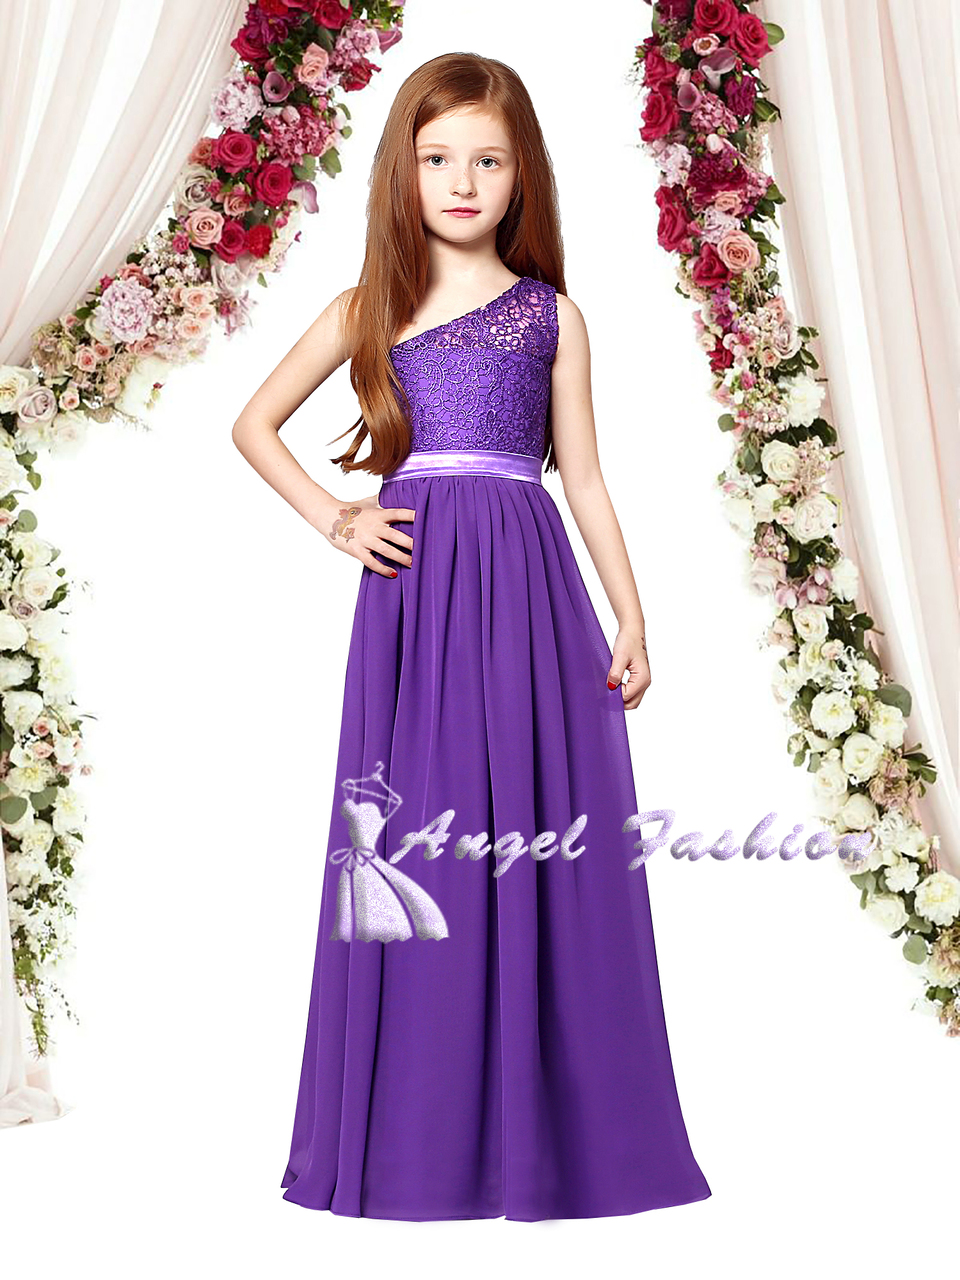 Chiffon Gorgeous One Shoulder Junior Party Prom Wedding Bridesmaid dress 6-14Ys